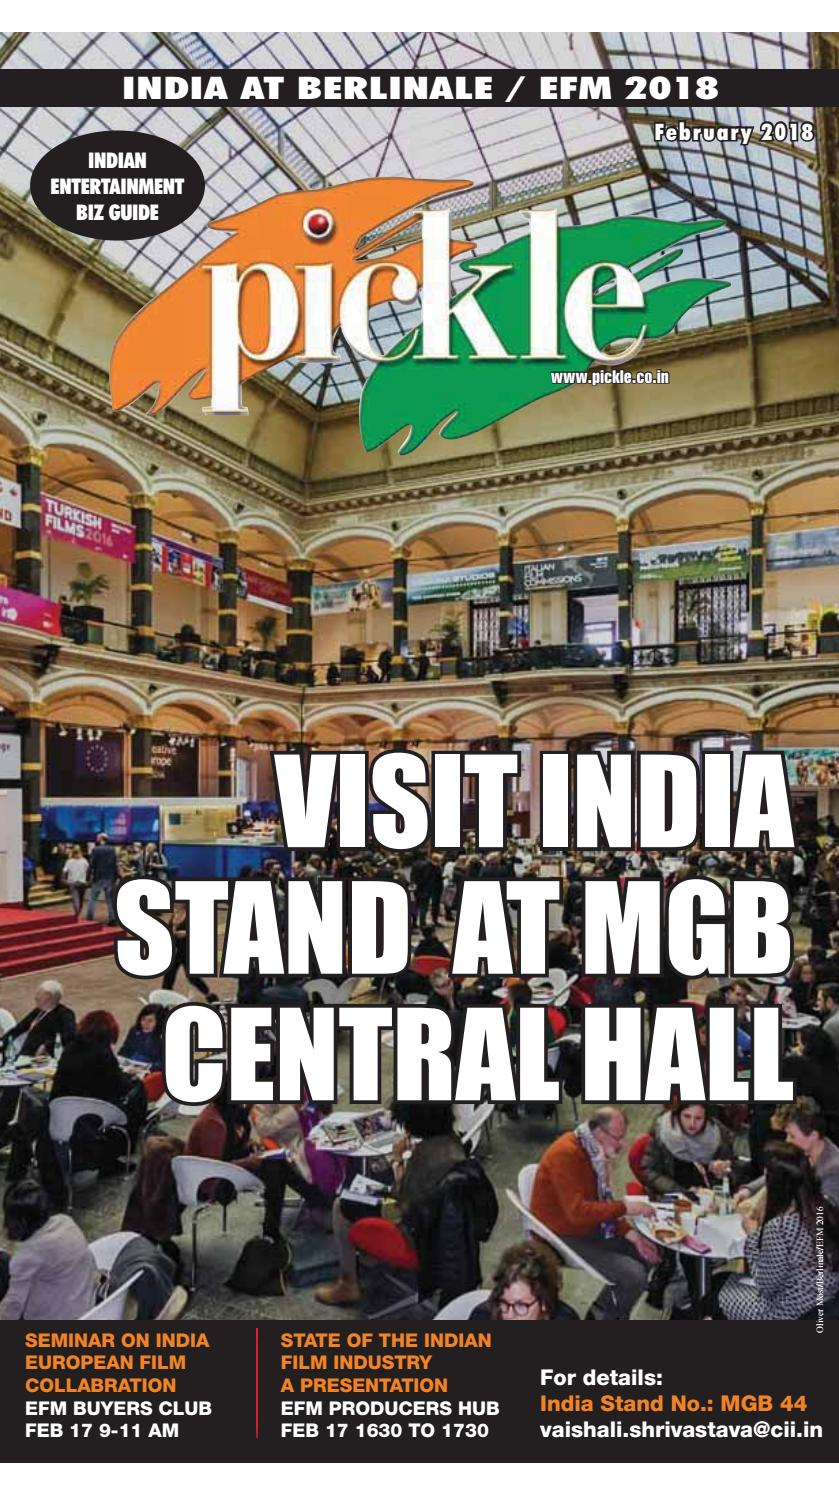 Pickle Feb 2018 Berlinale EFM Edition by Pickle -- Indian